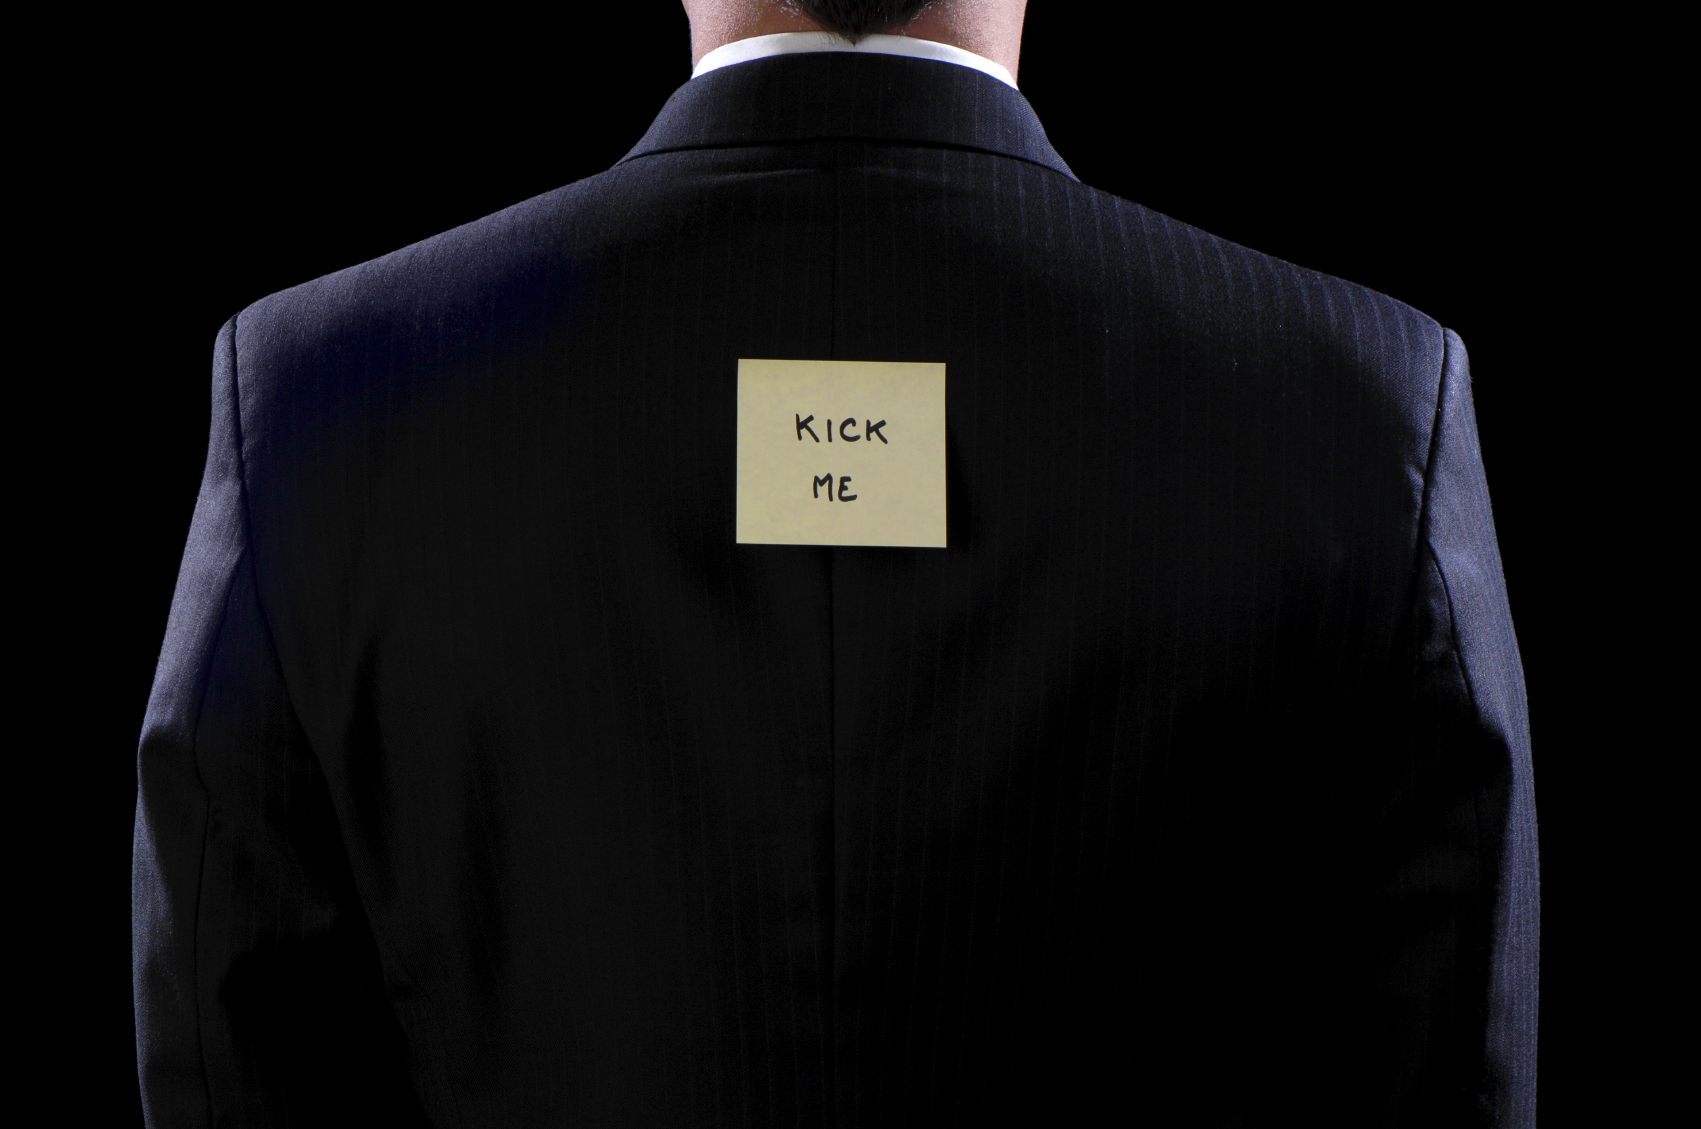 A businessman with a Kick Me sign